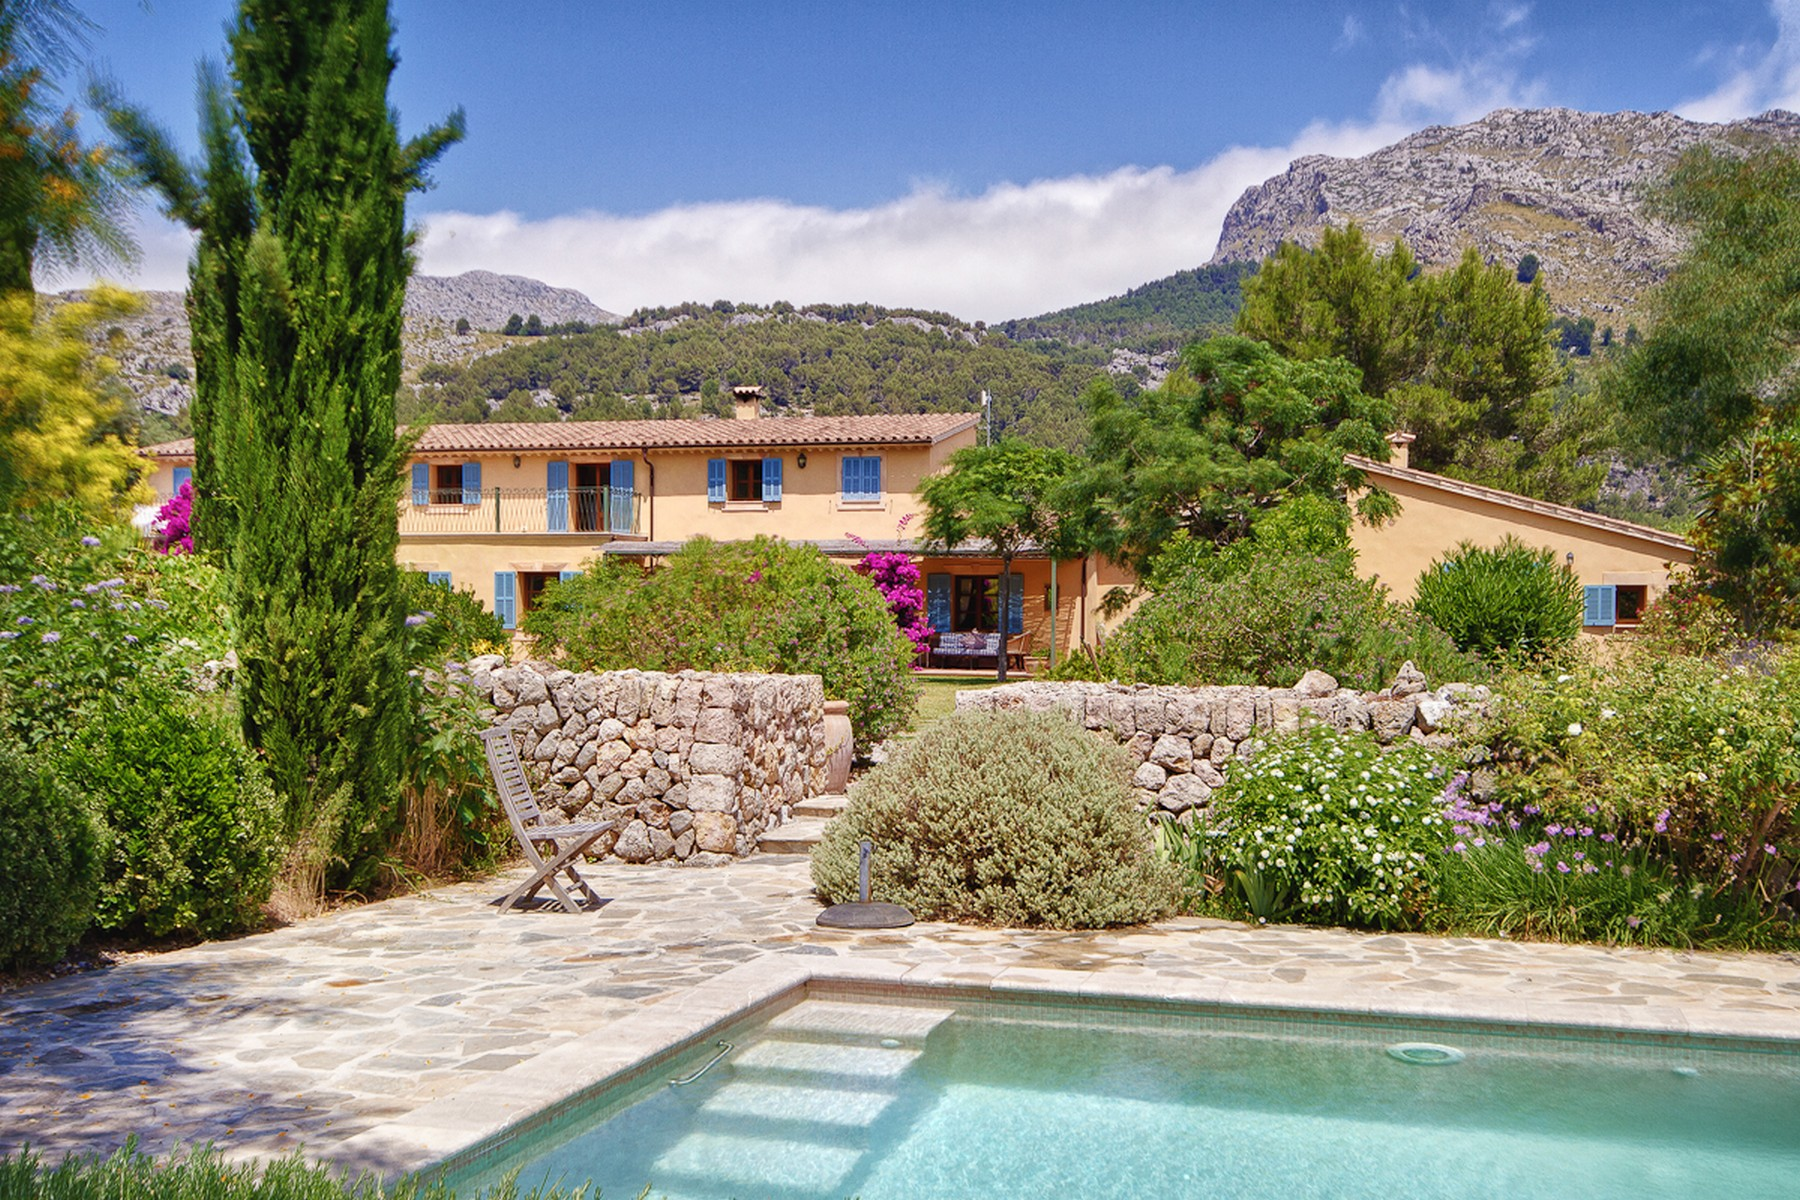 Farm / Ranch / Plantation for Sale at Idyllic historic country Finca in Pollensa Pollensa, Mallorca, 07460 Spain